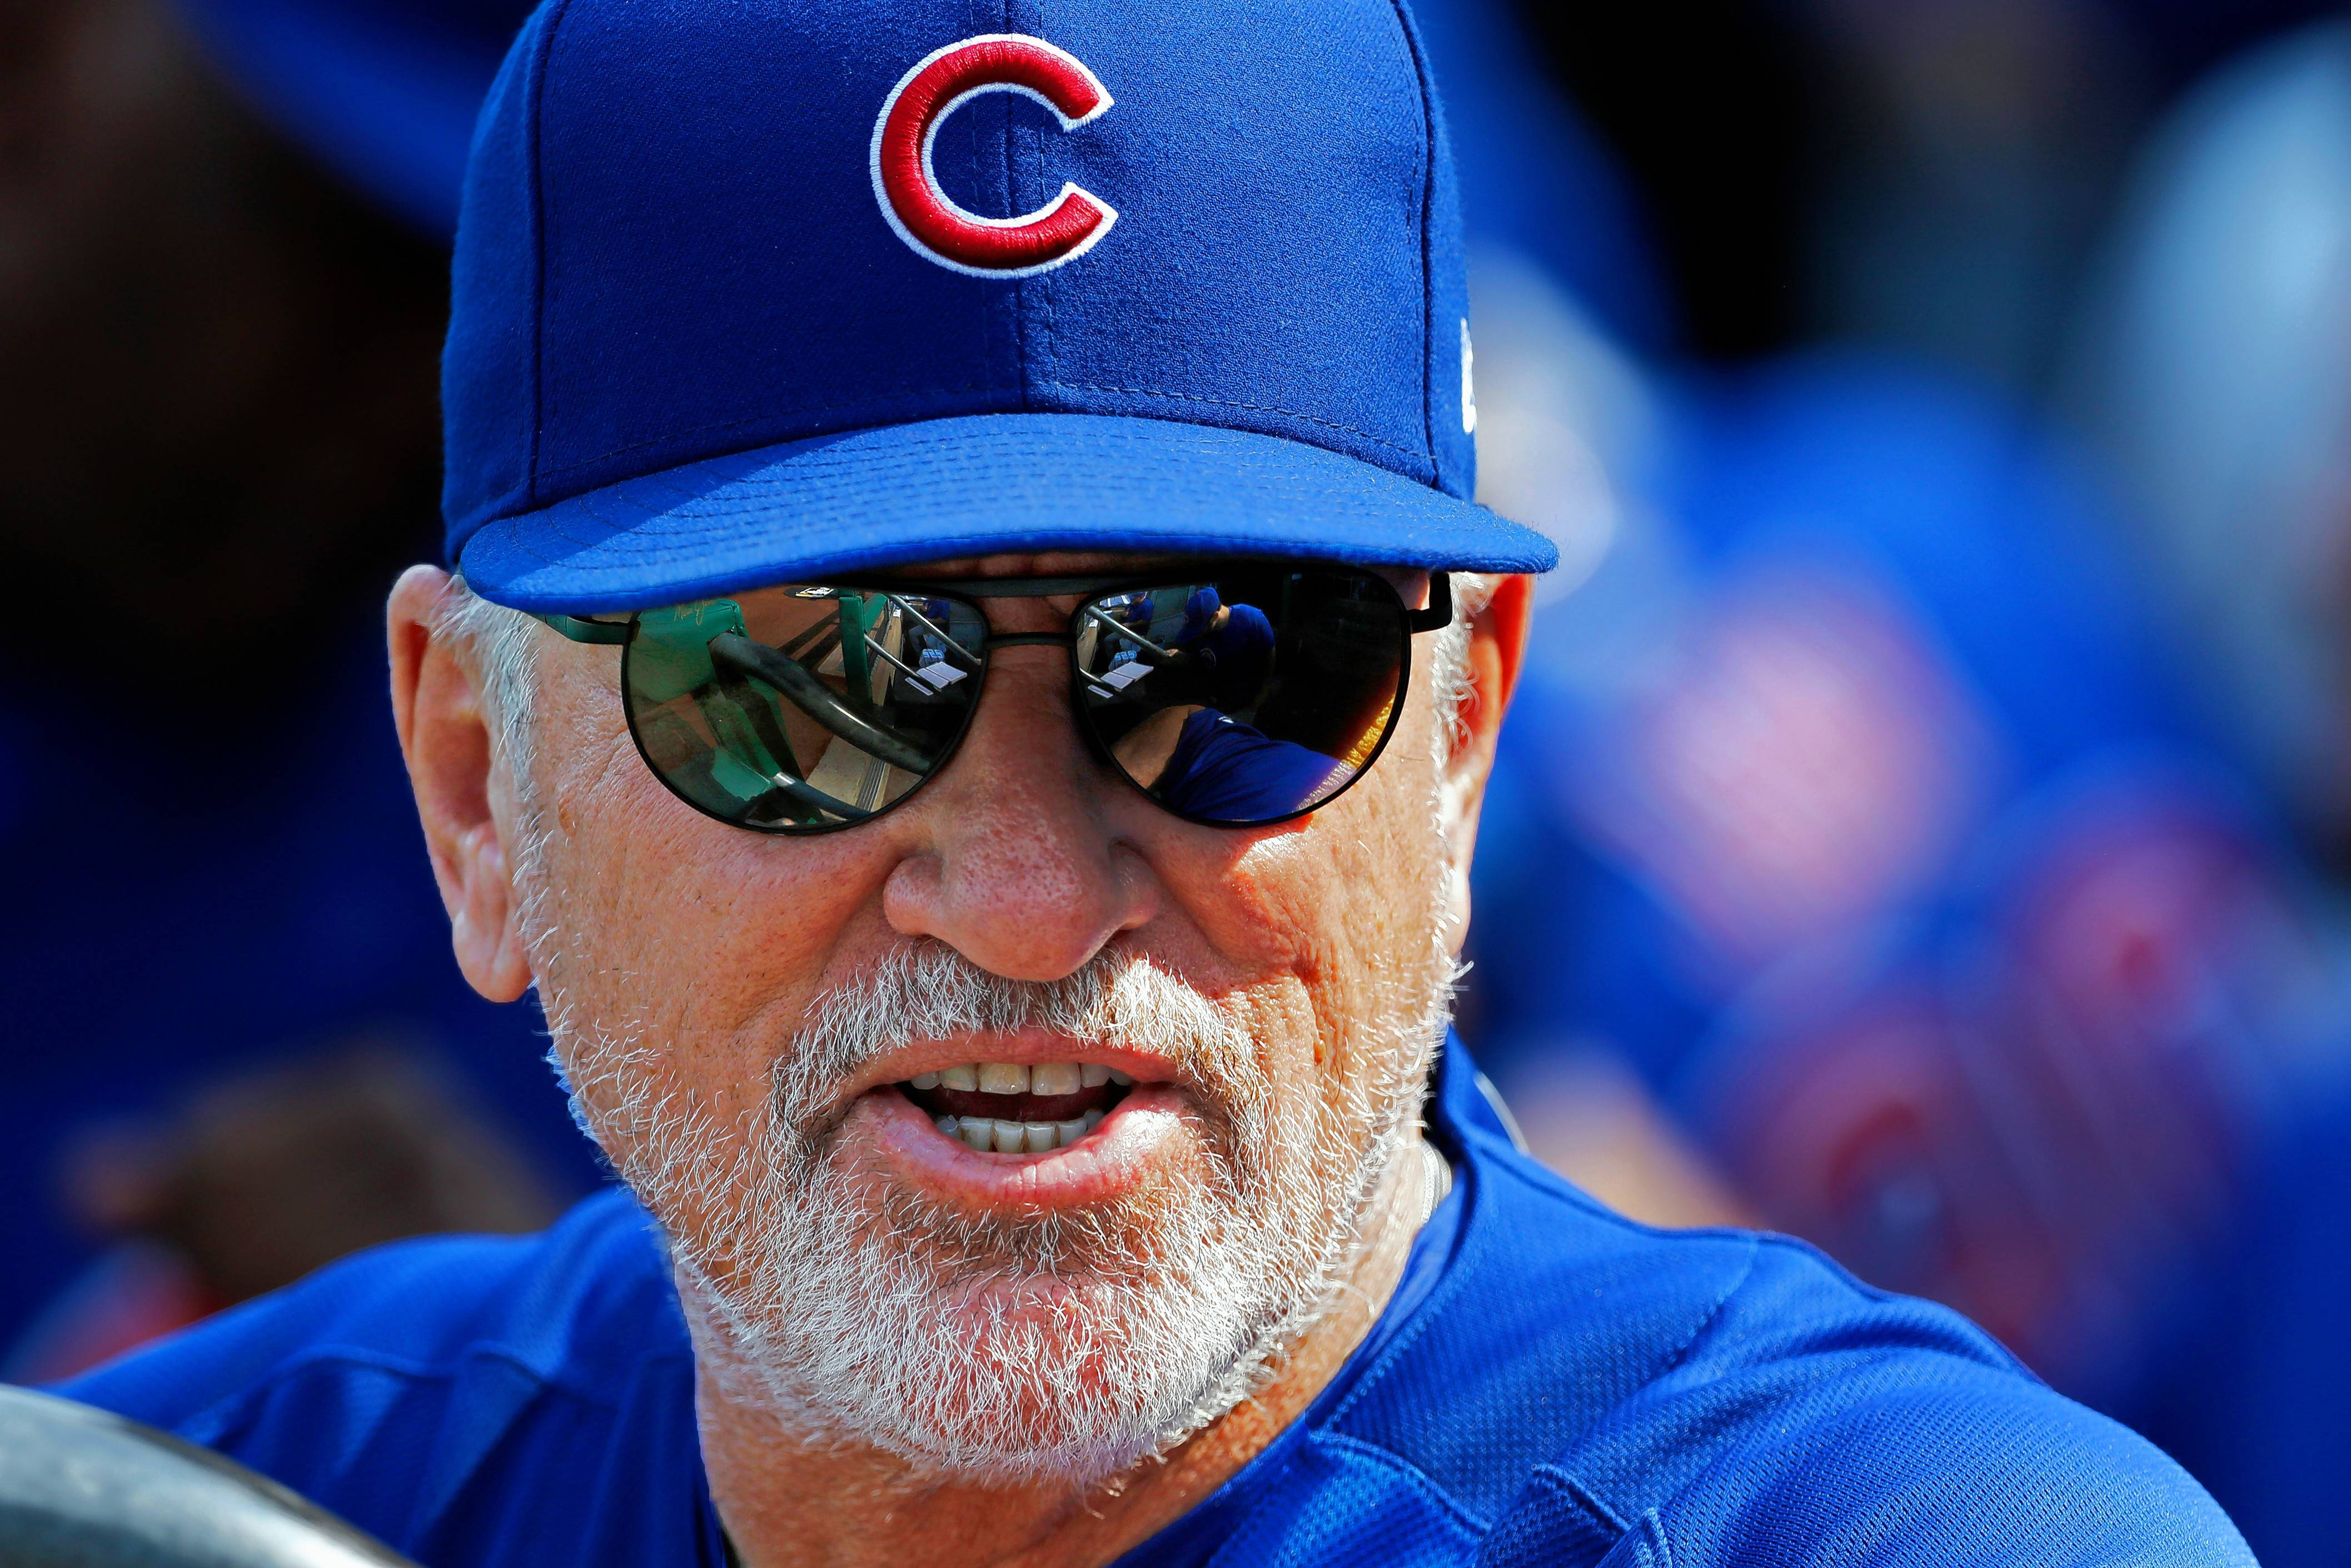 Associated Press Chicago Cubs manager Joe Maddon earned a reputation in Tampa as being good at working with young players on a small-budget team. Getting the Rays to the World Series (they lost to the Phillies) also was a major accomplishment.